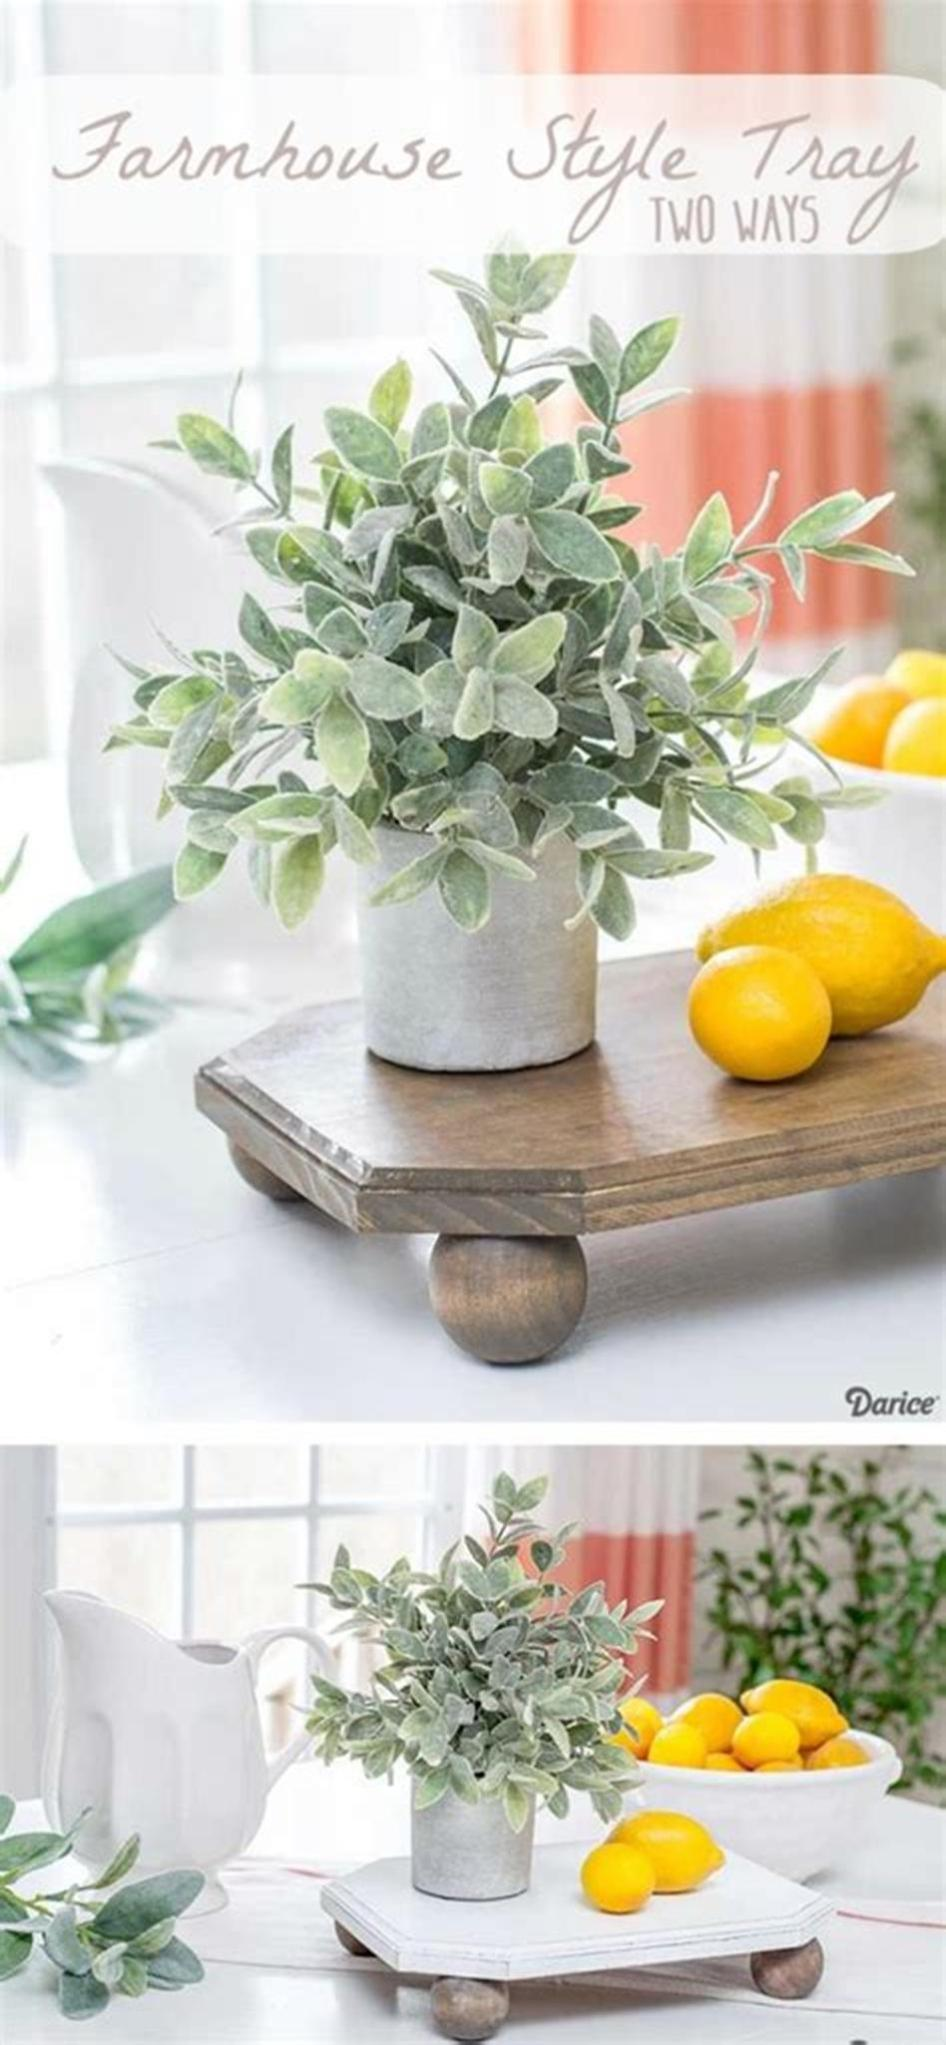 40 Beautiful Farmhouse Style Tray Decor Ideas 41